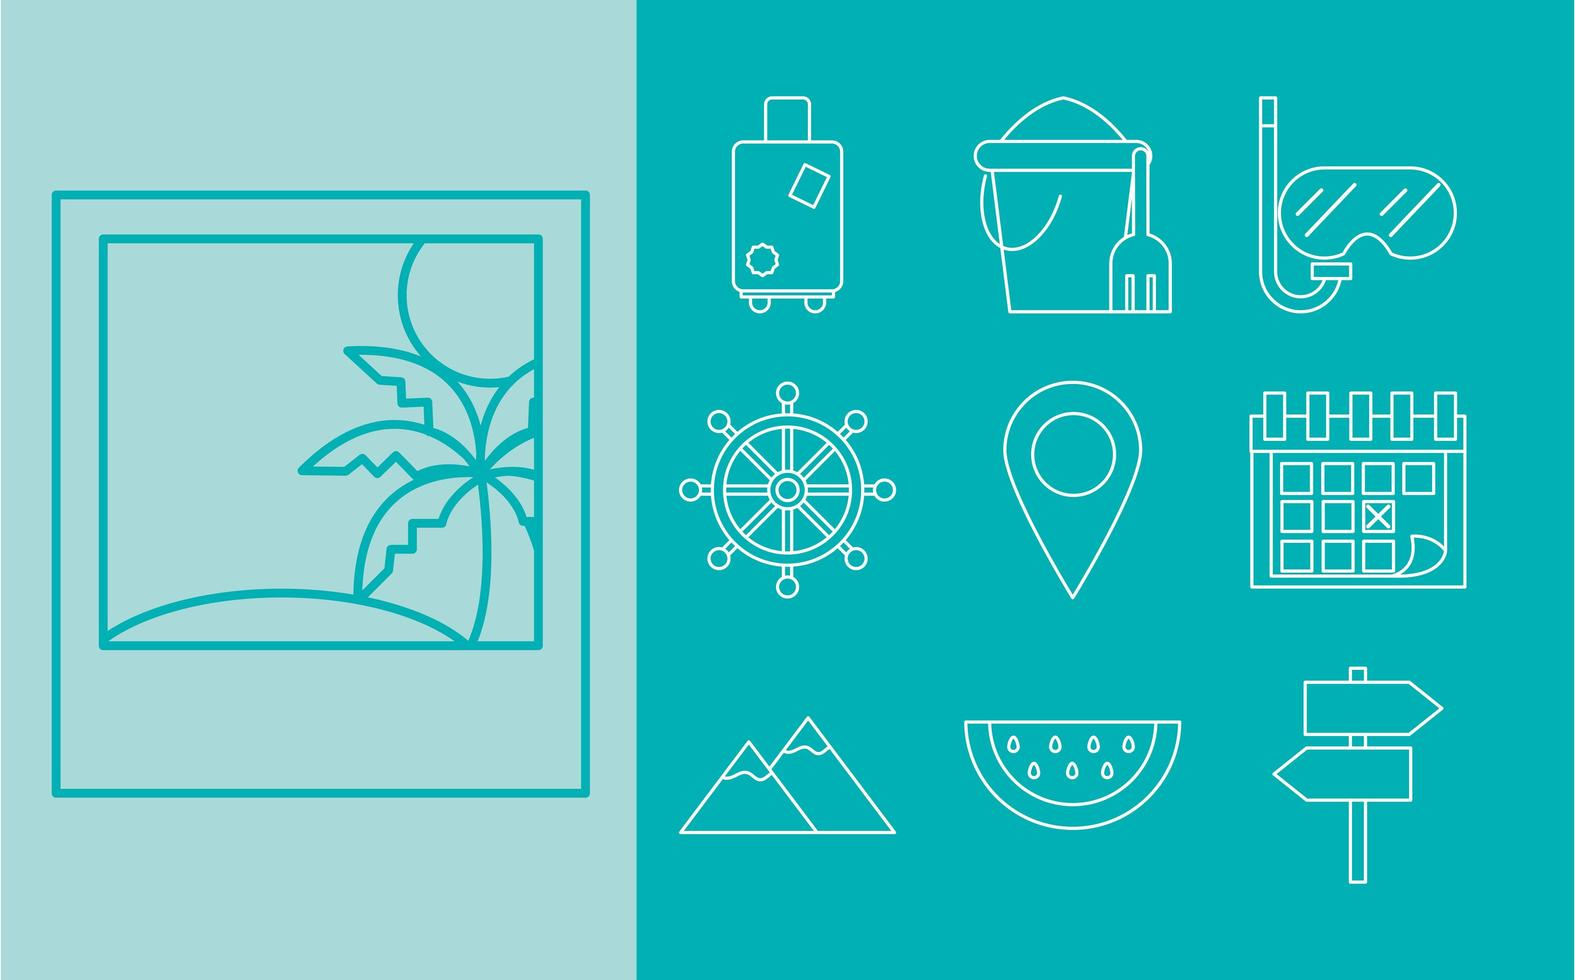 Travelling and tourism icon set vector